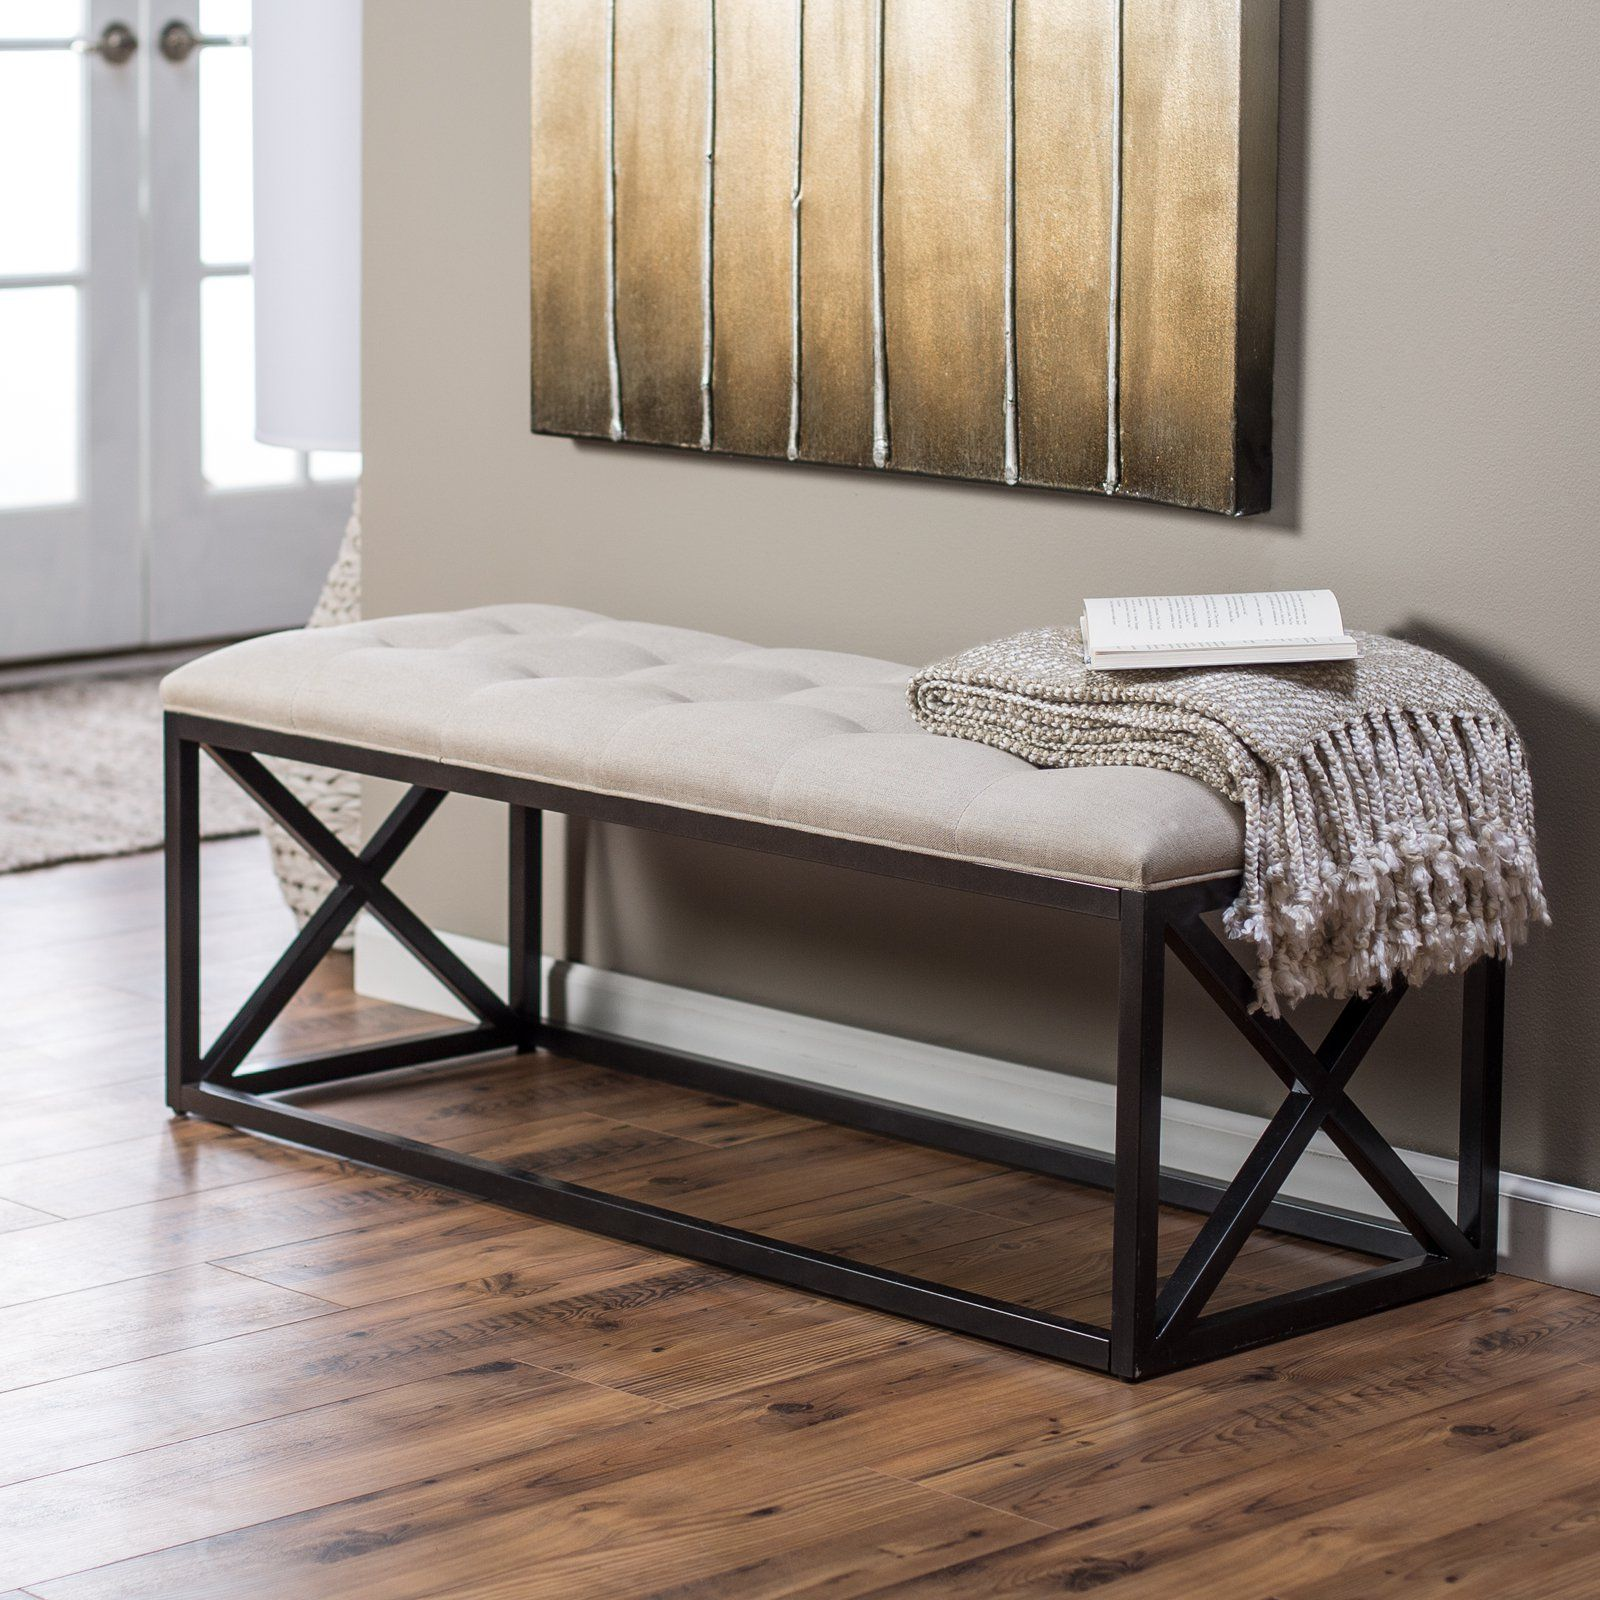 Belham Living Grayson Tufted Entryway Bench - Bedroom Benches at ...